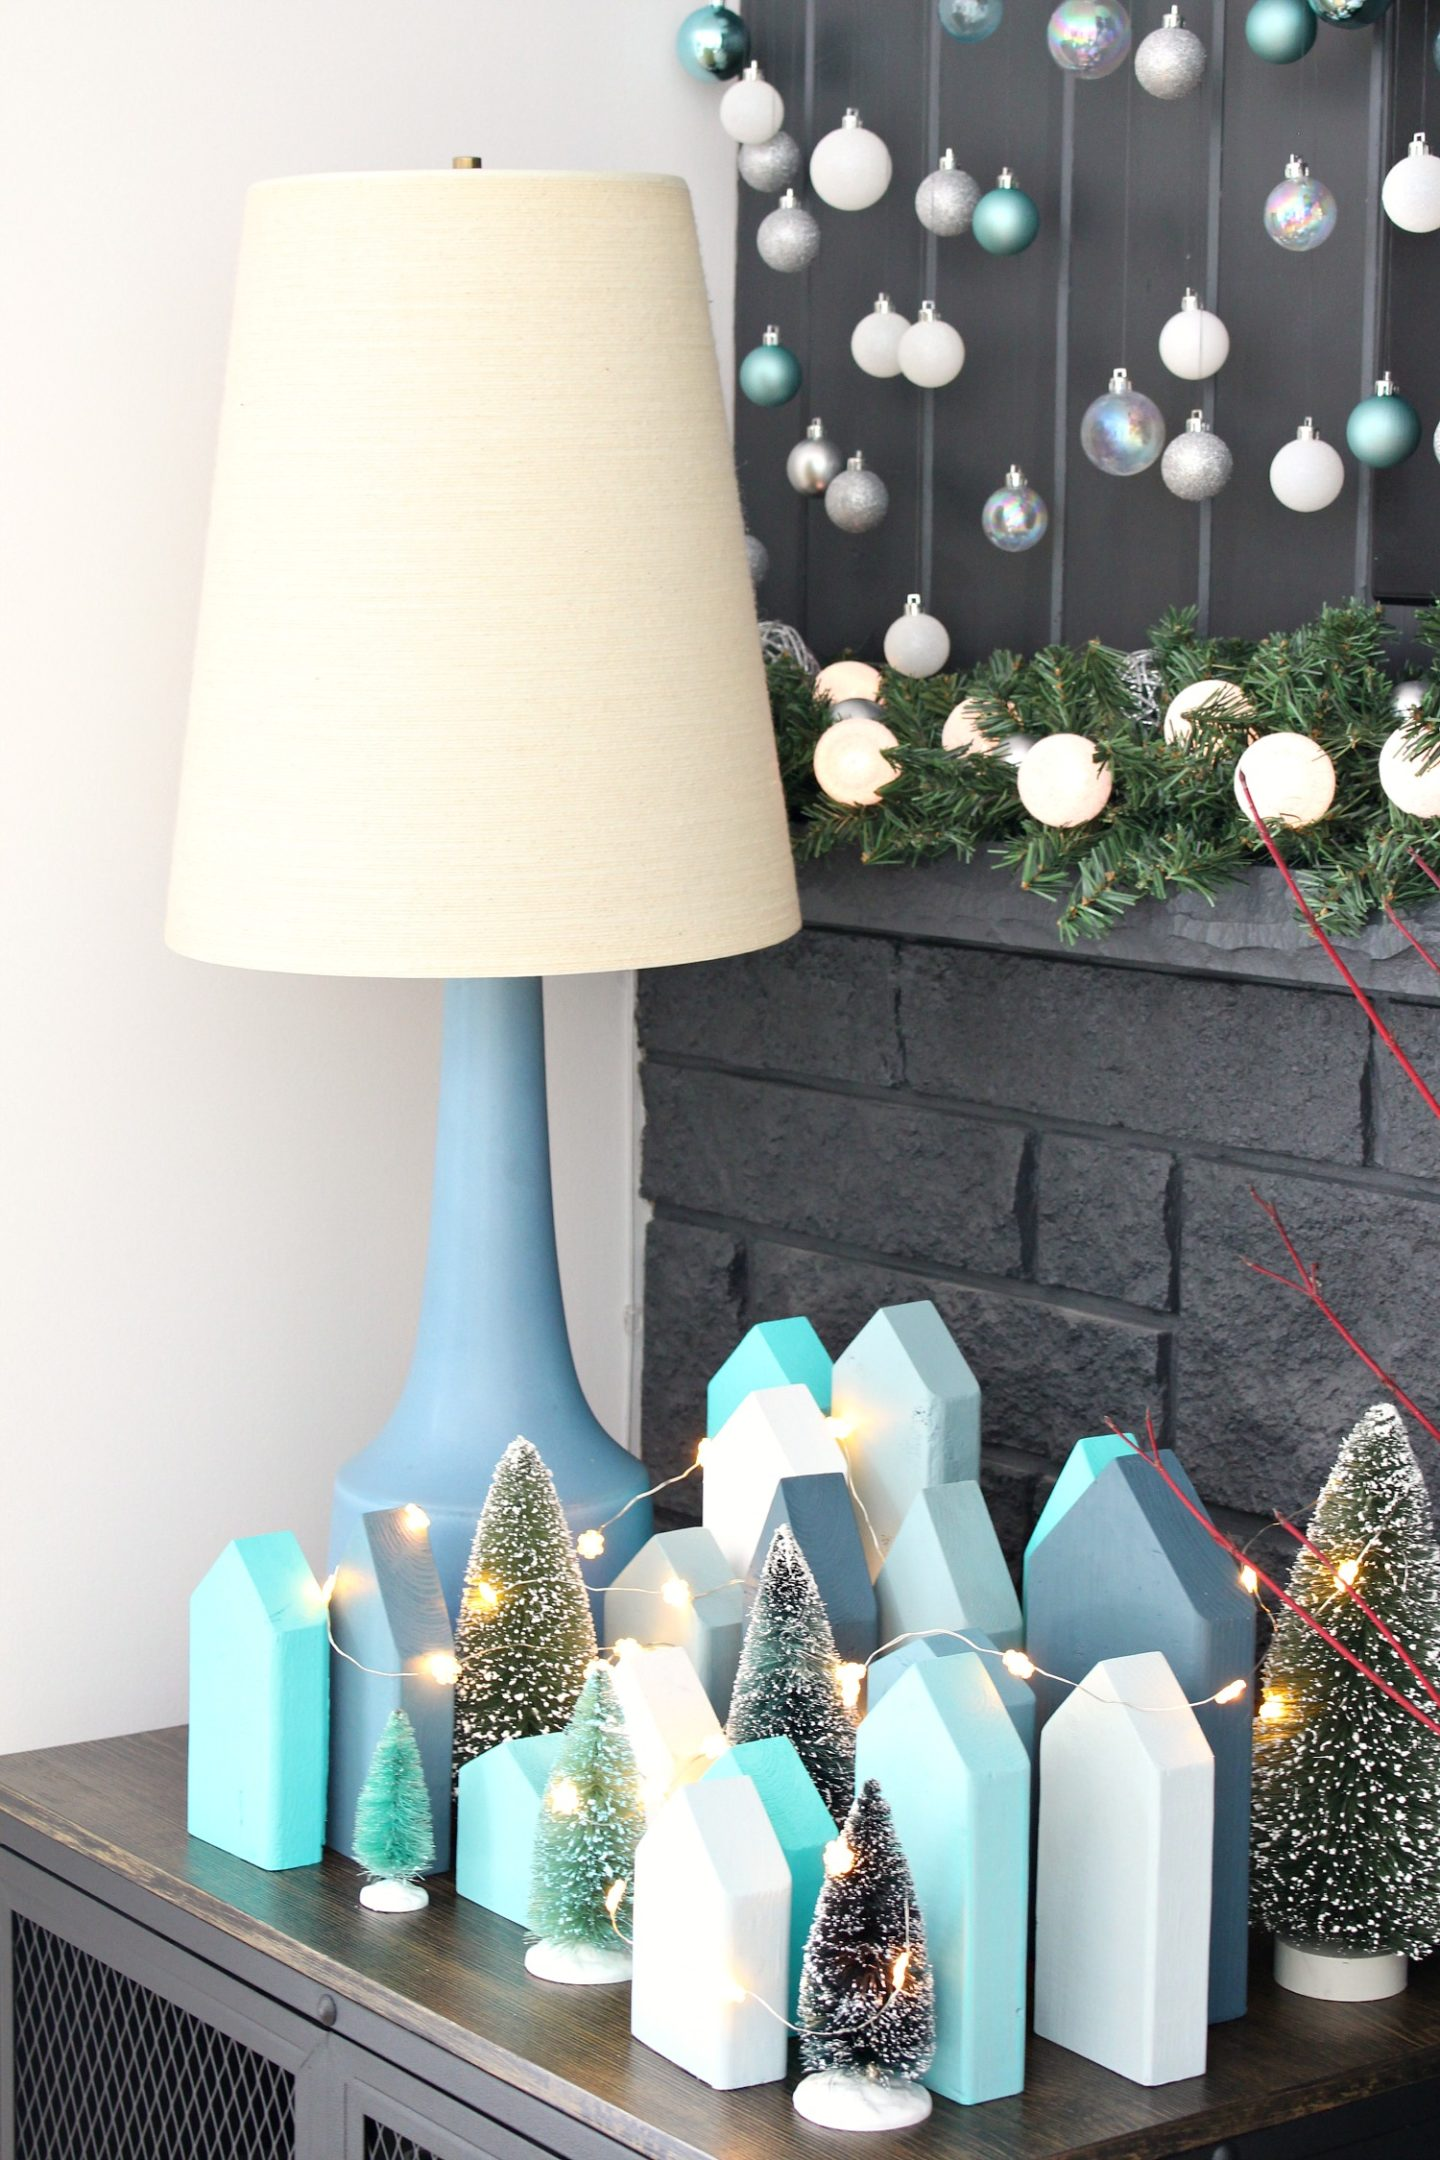 DIY Holiday Village Tutorial